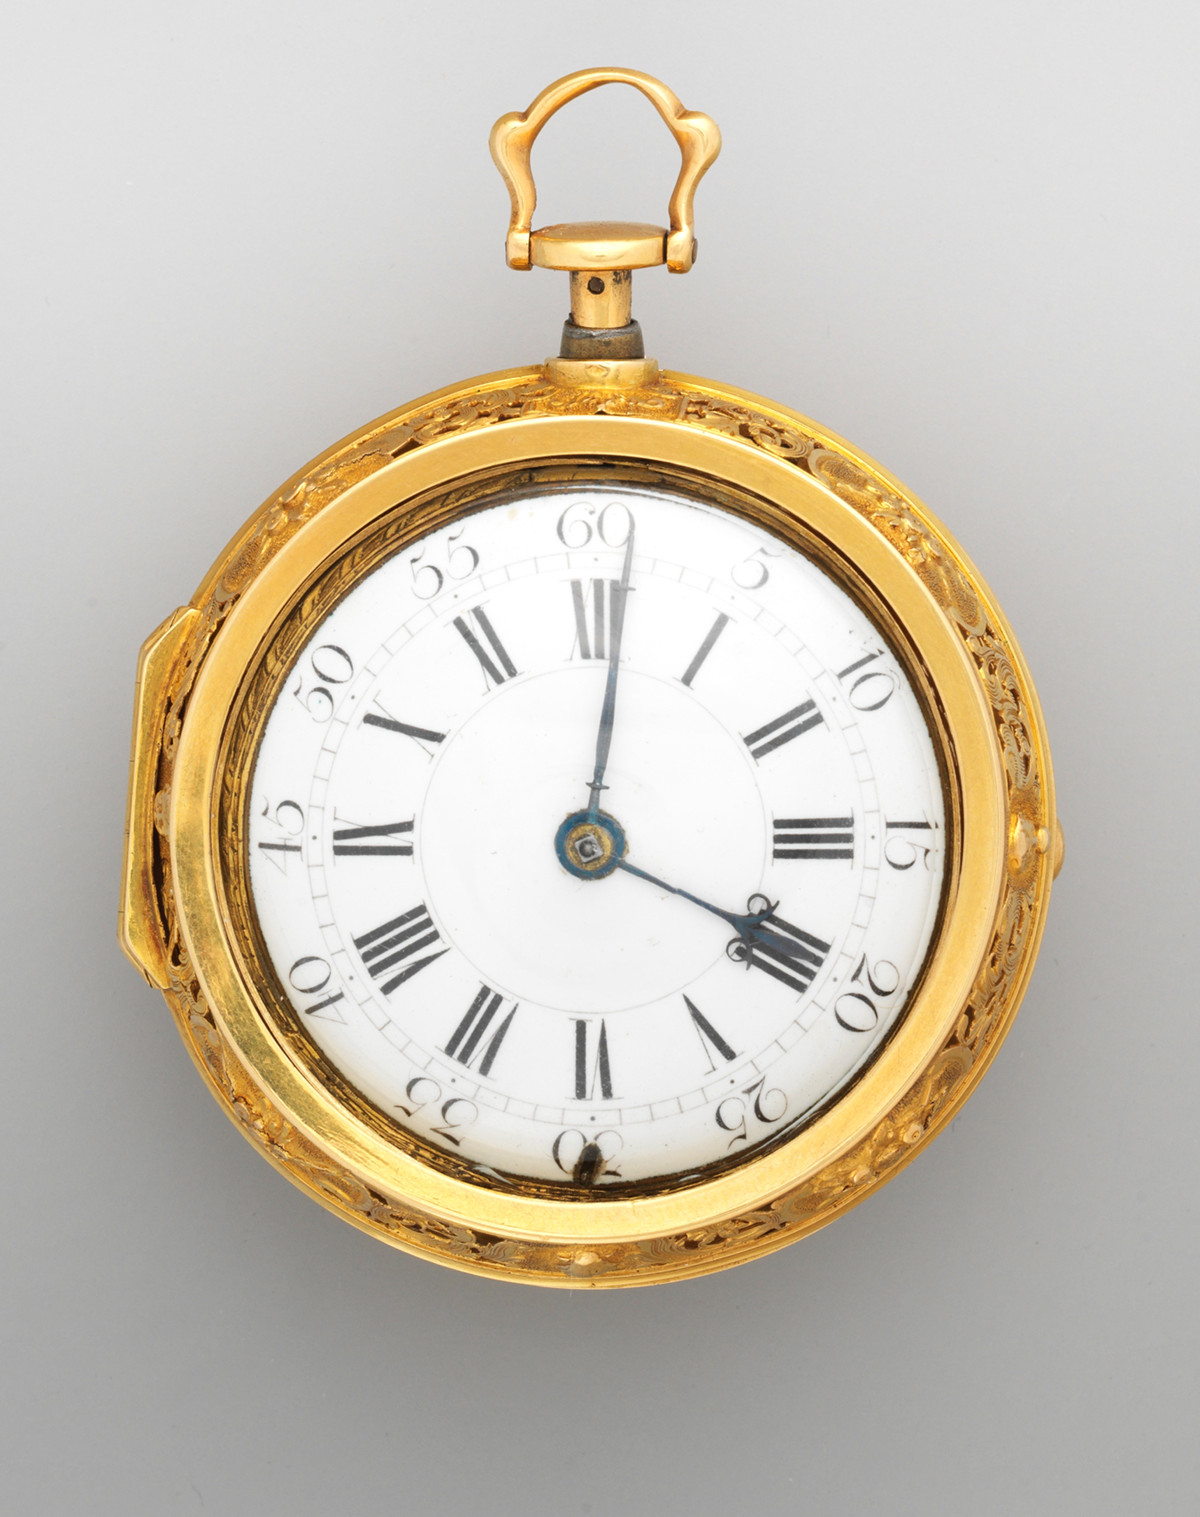 1740. Watch. British, London. Gold, enamel. metmuseum